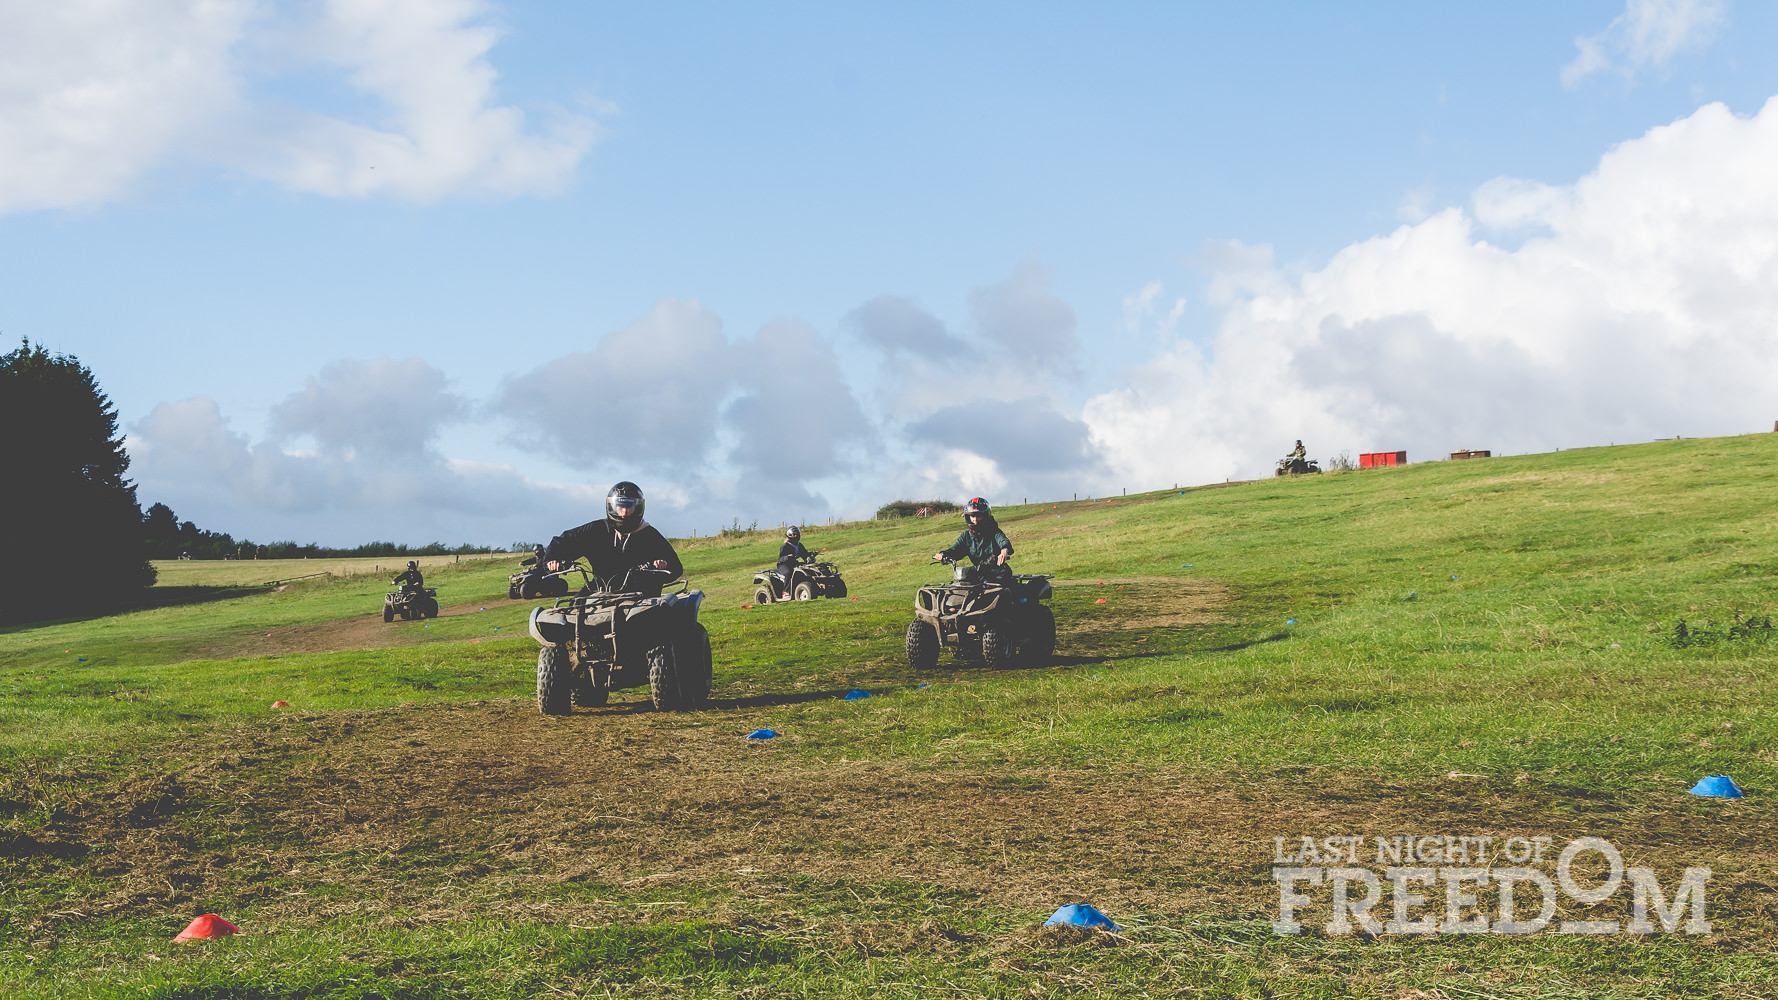 LNOF staff steering quad bikes around a field